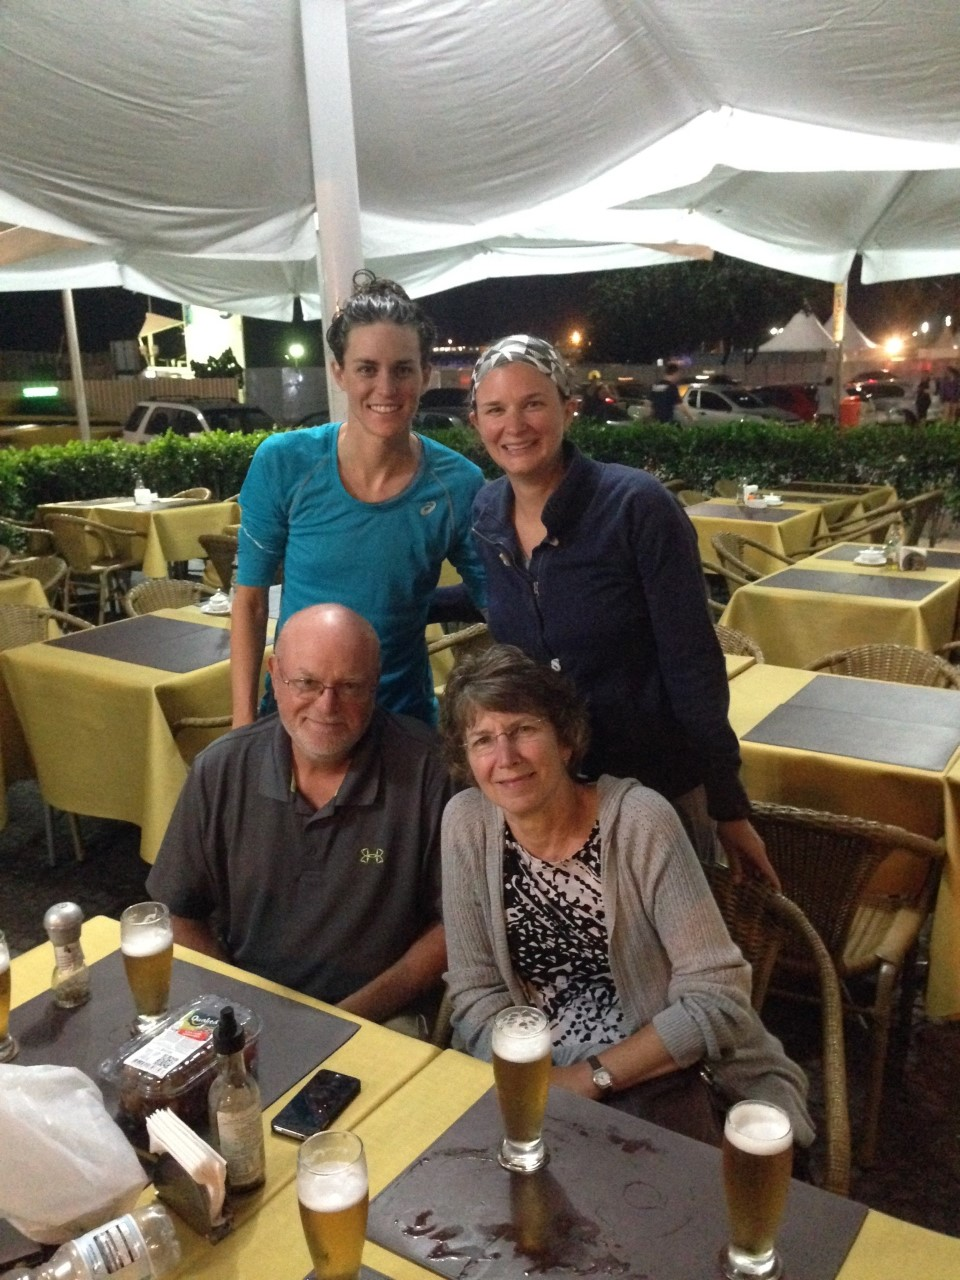 Jorgensen family at restaurant.